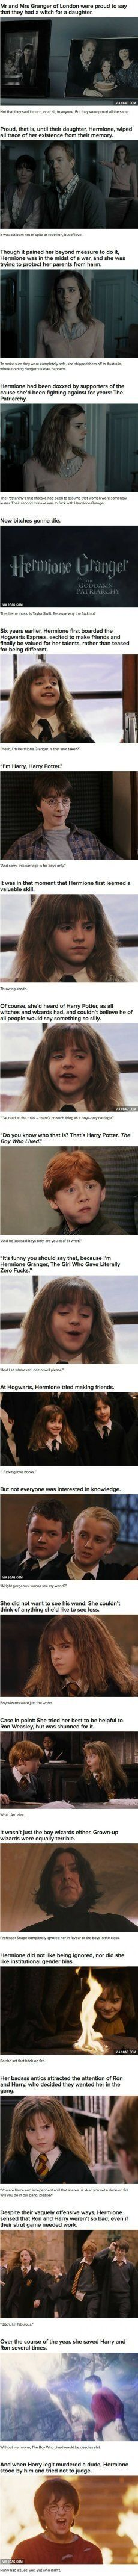 What are the best Harry Potter-related jokes? - Quora